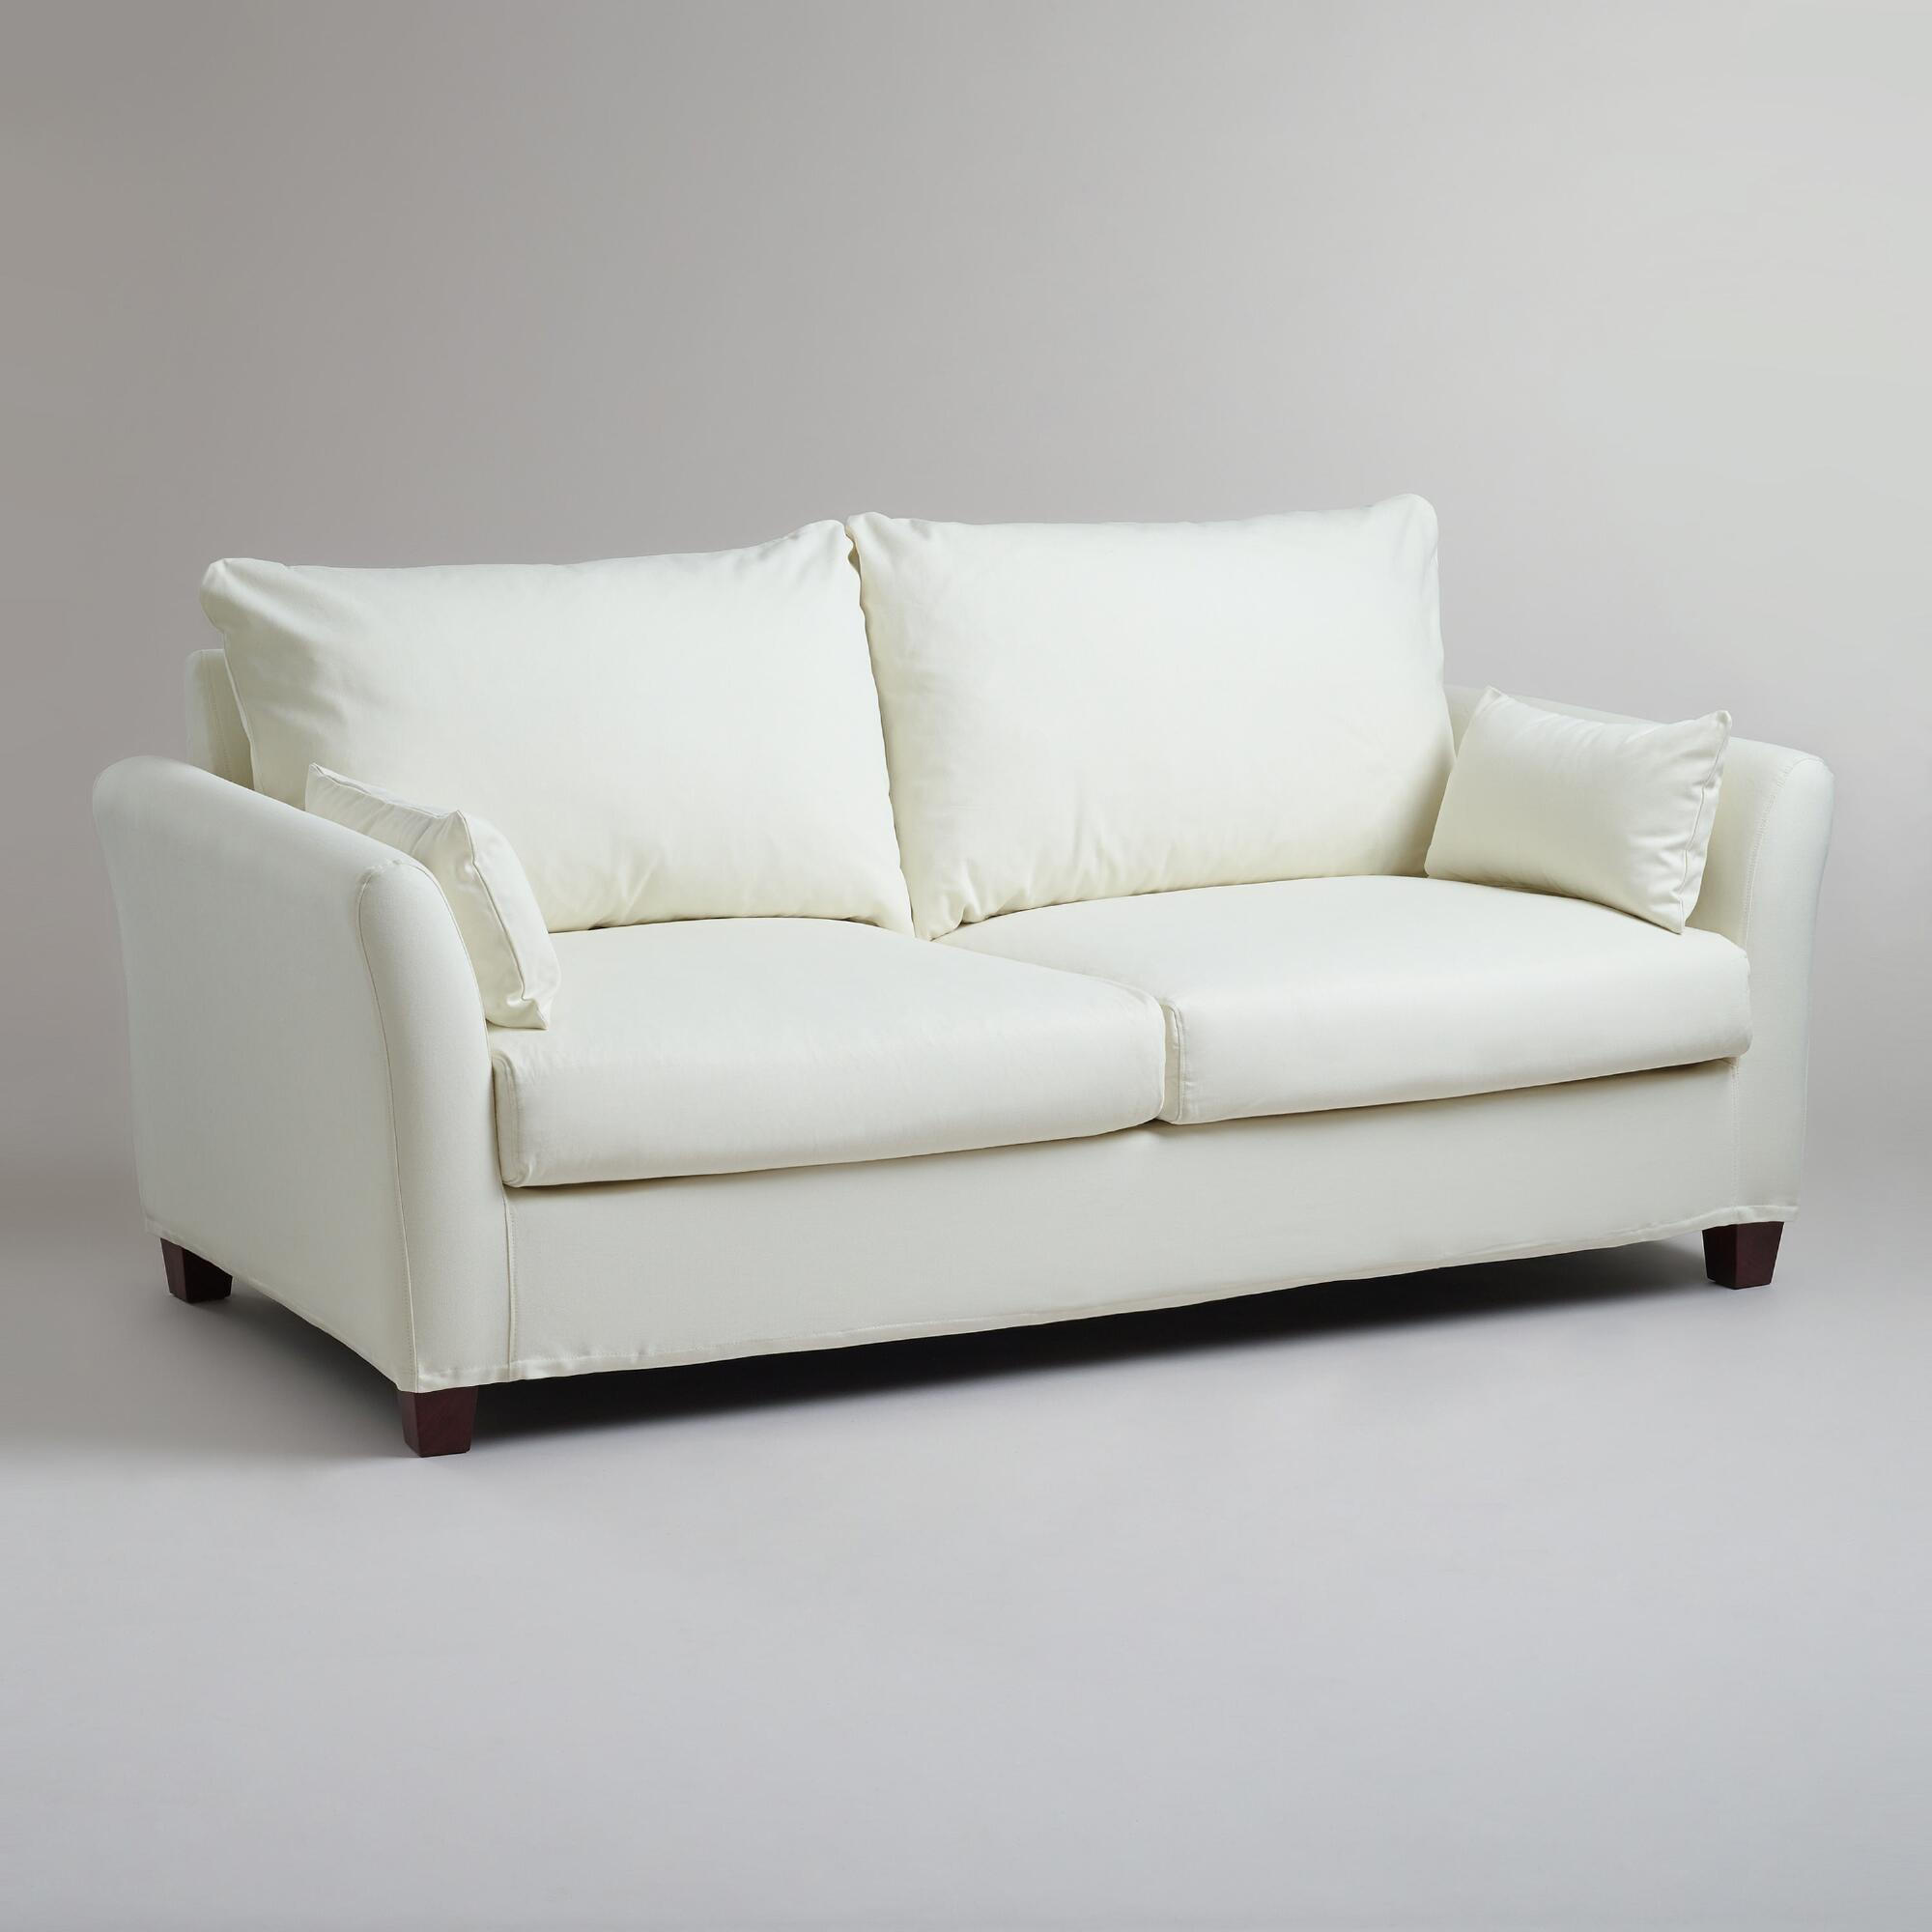 Ivory luxe sofa slipcover world market for Outdoor furniture covers world market